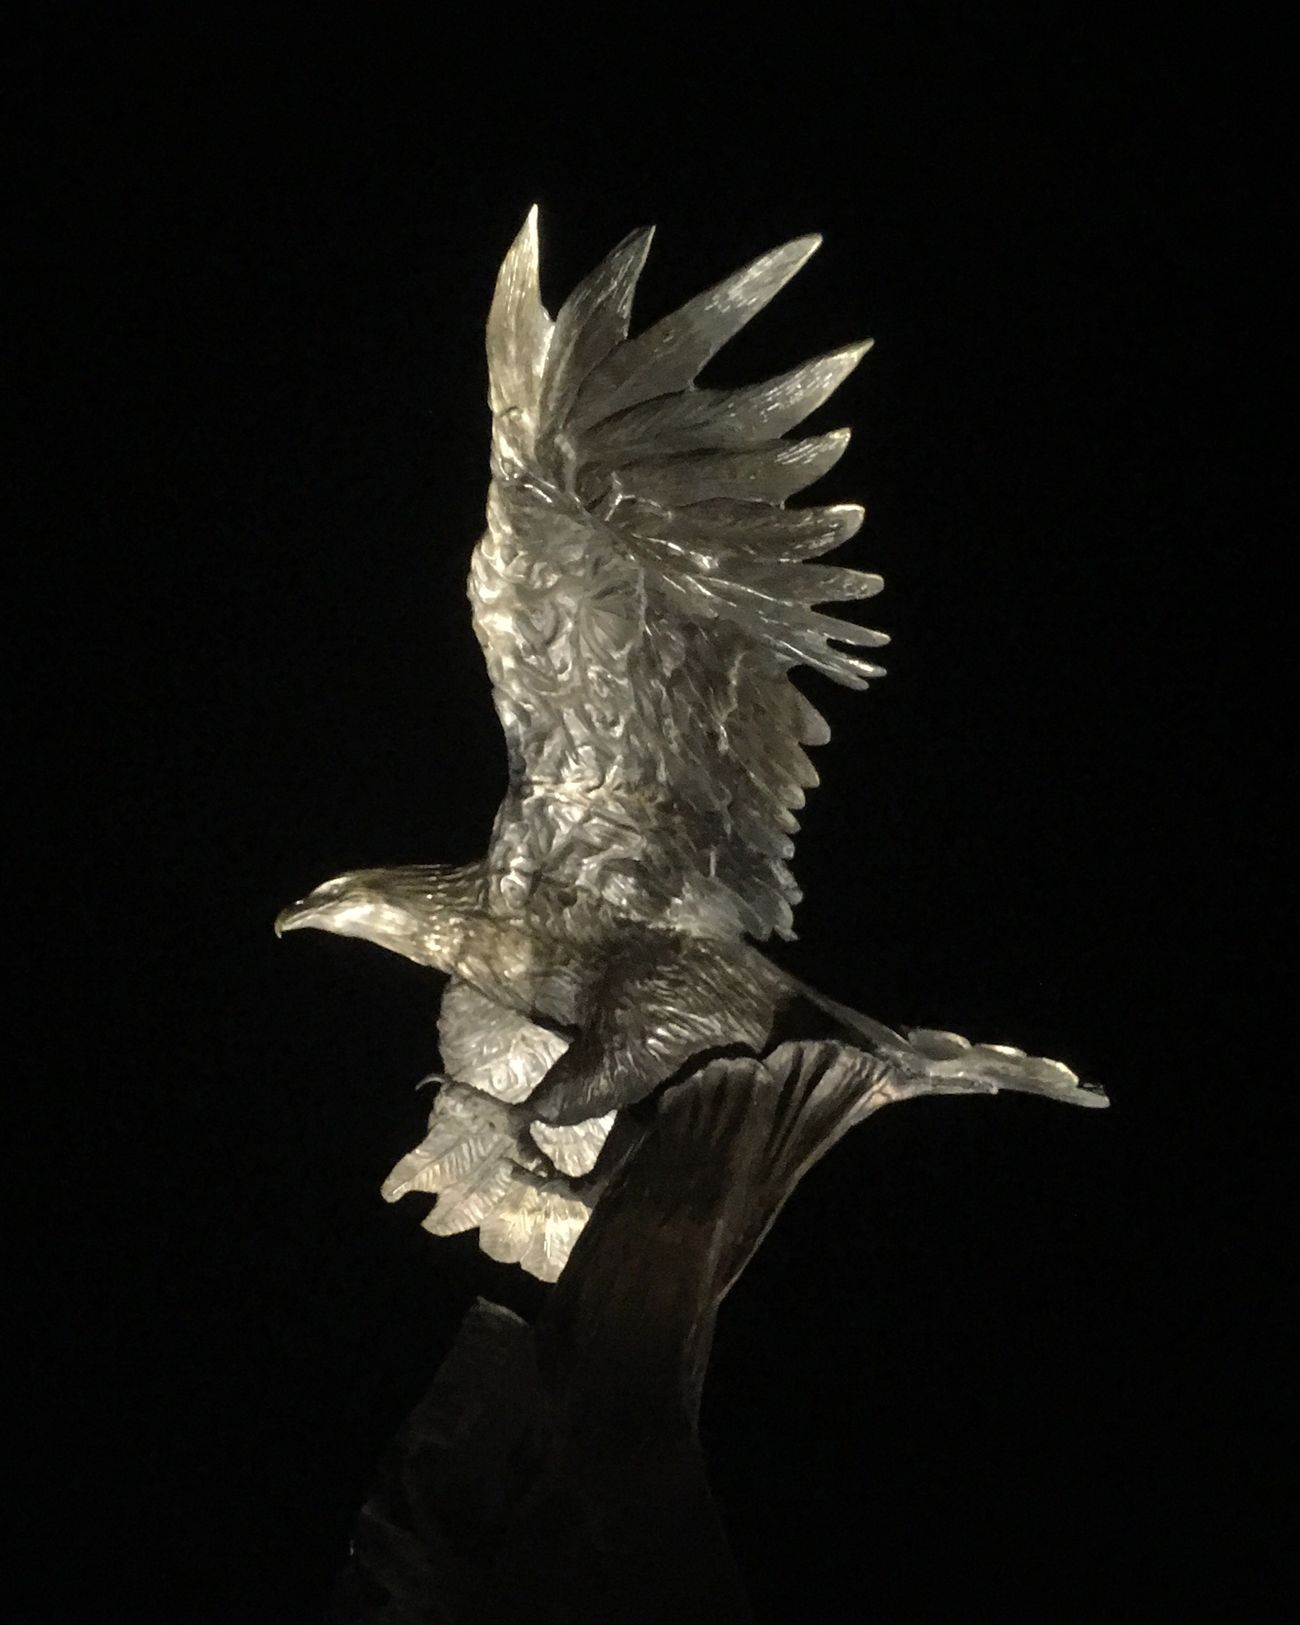 Bronze Eagle Black Background Bird One Animal Spread Wings Animal Themes Close-up No People Outdoors Bald Eagle Black Background Animal Wildlife Flying Night Photography Memorial Sculpture Florida Navarre Blackhawk Memorial Military Helicopter Bronze Sculpture